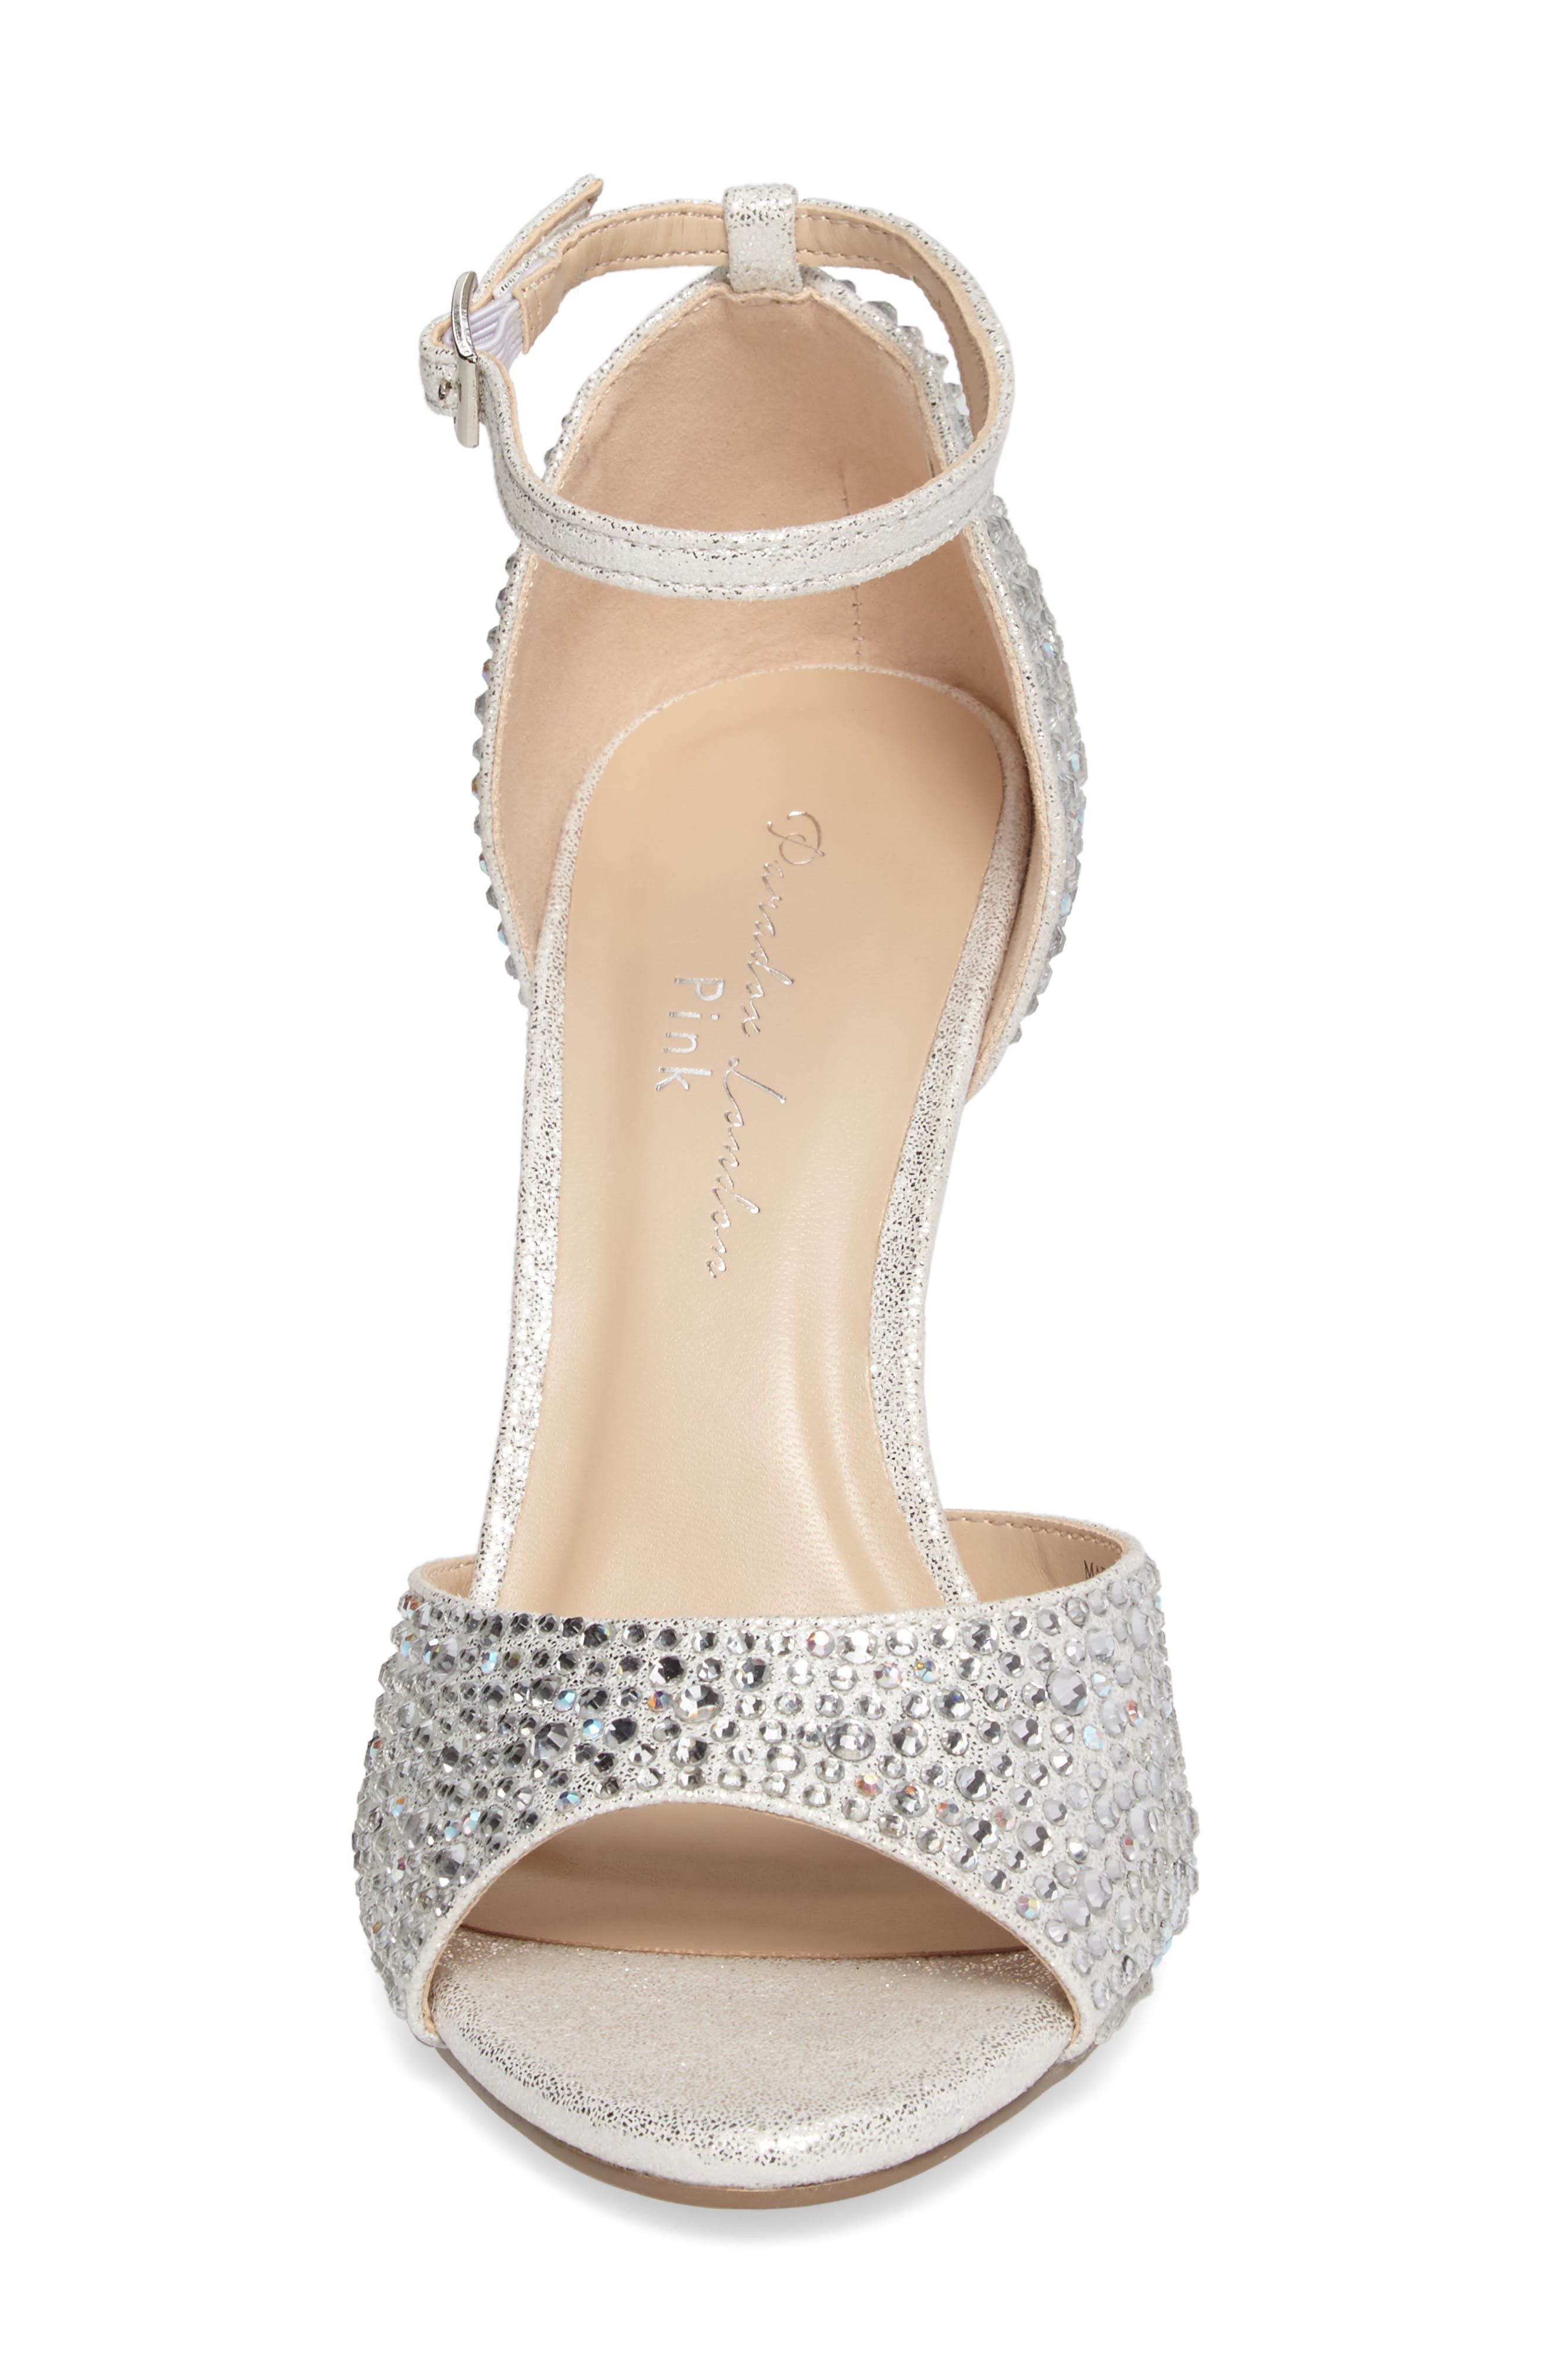 Mira Embellished Glitter Sandal,                             Alternate thumbnail 4, color,